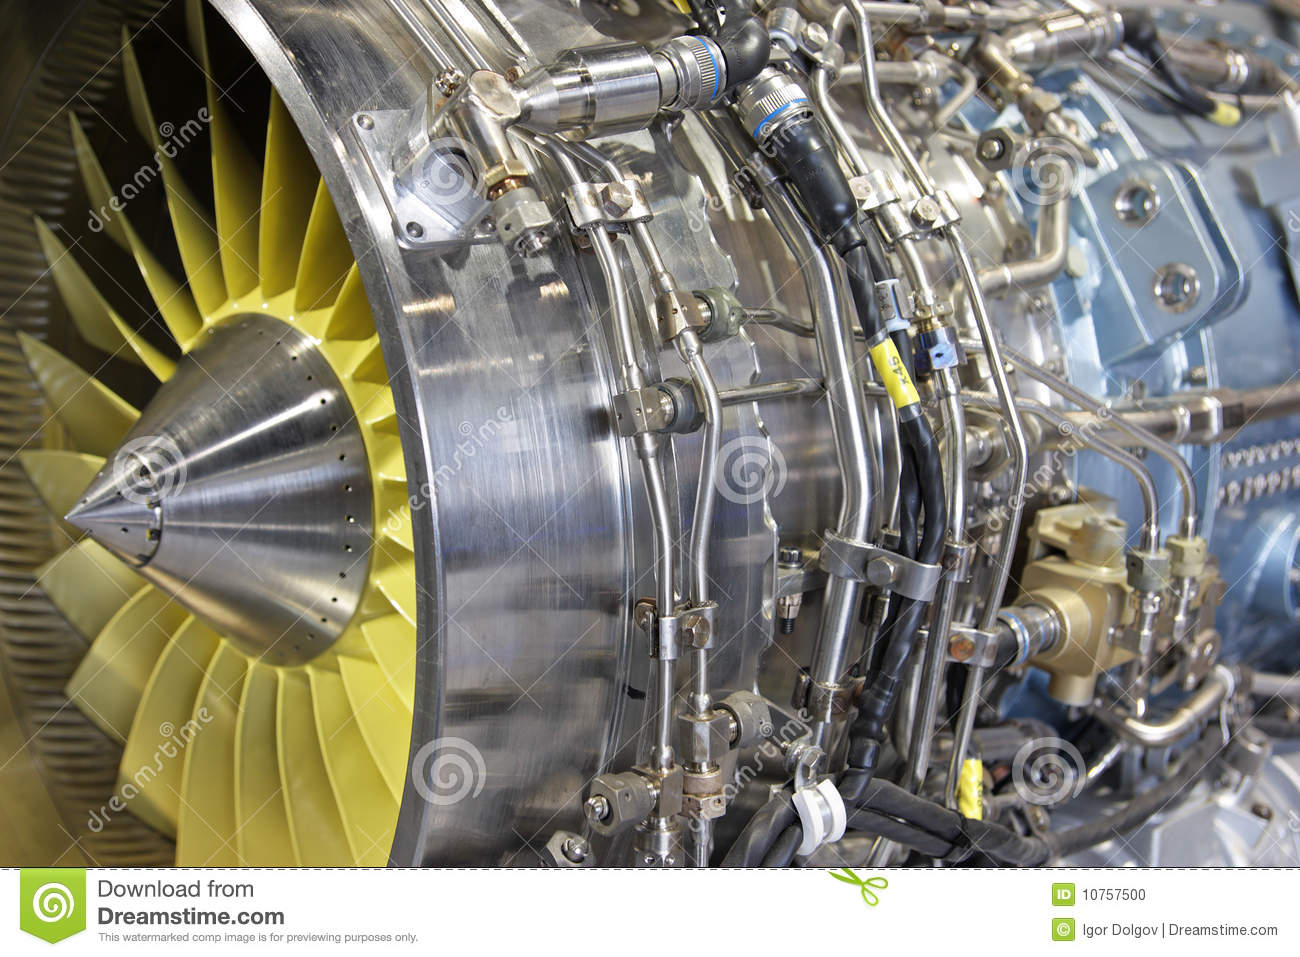 Turbo Jet Engine Stock Photo - Image: 10757500